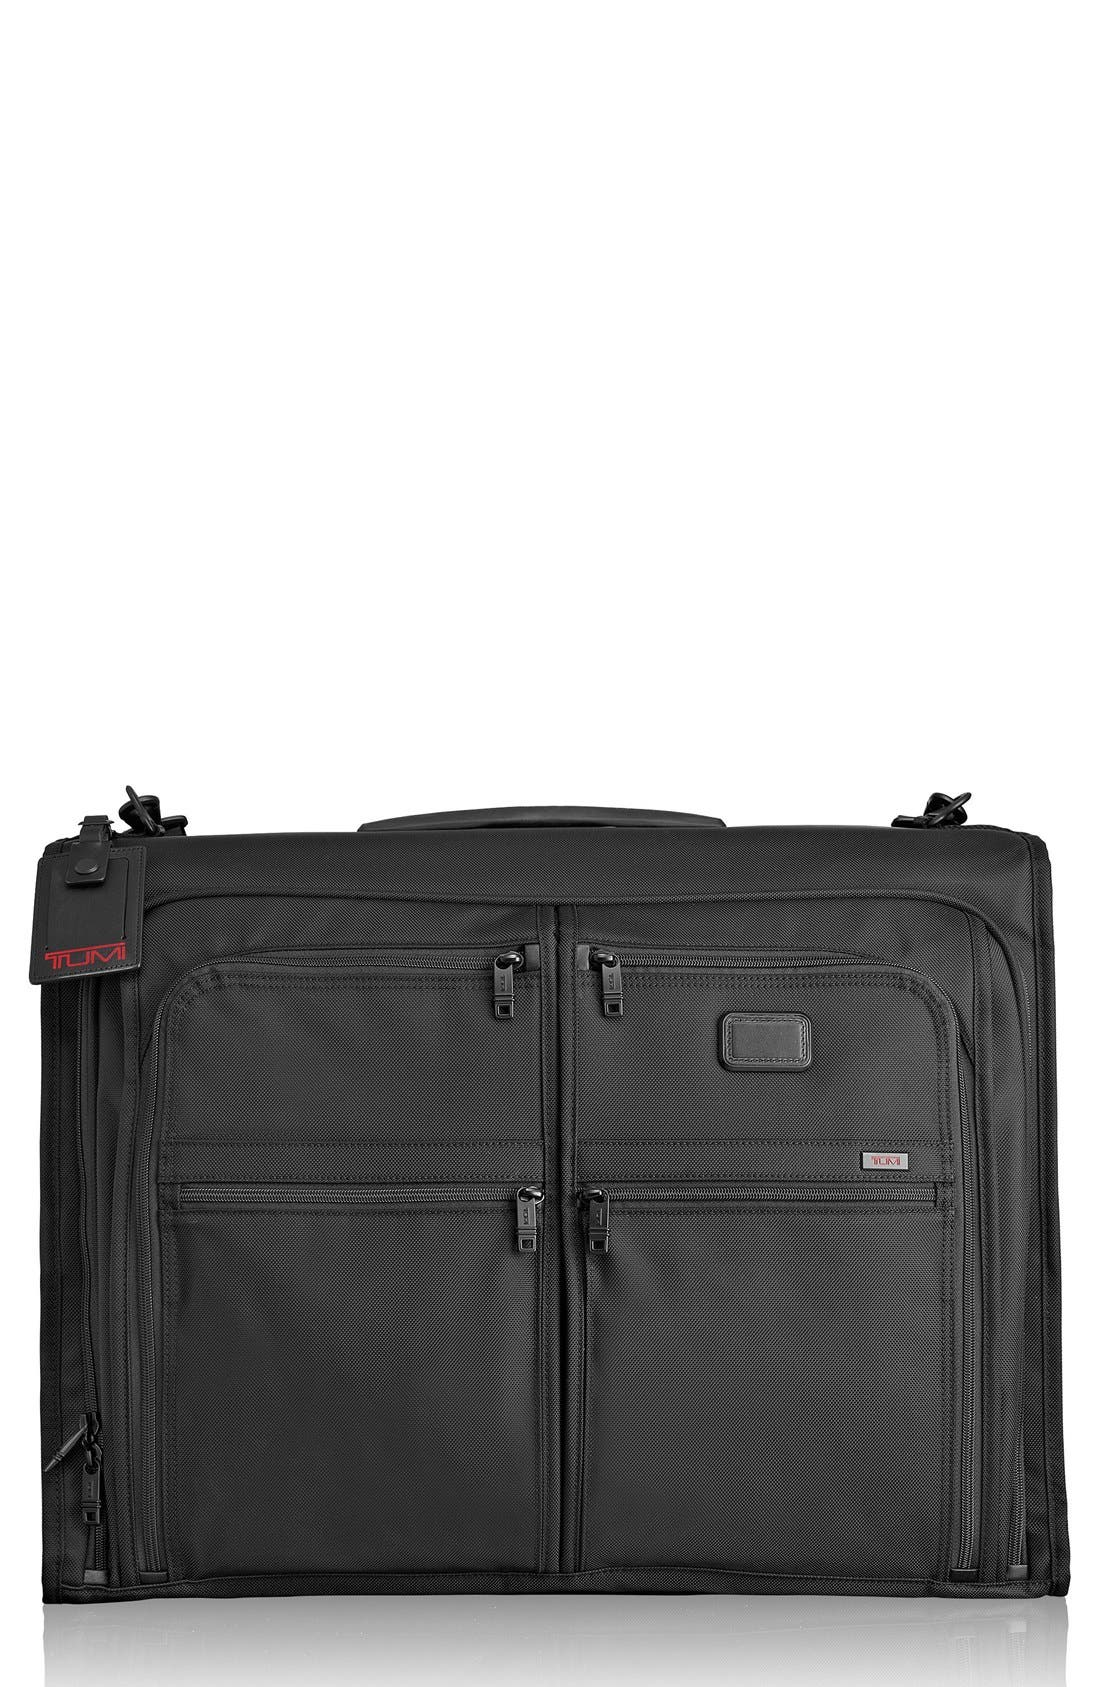 Tumi 'Alpha 2' Classic Garment Bag